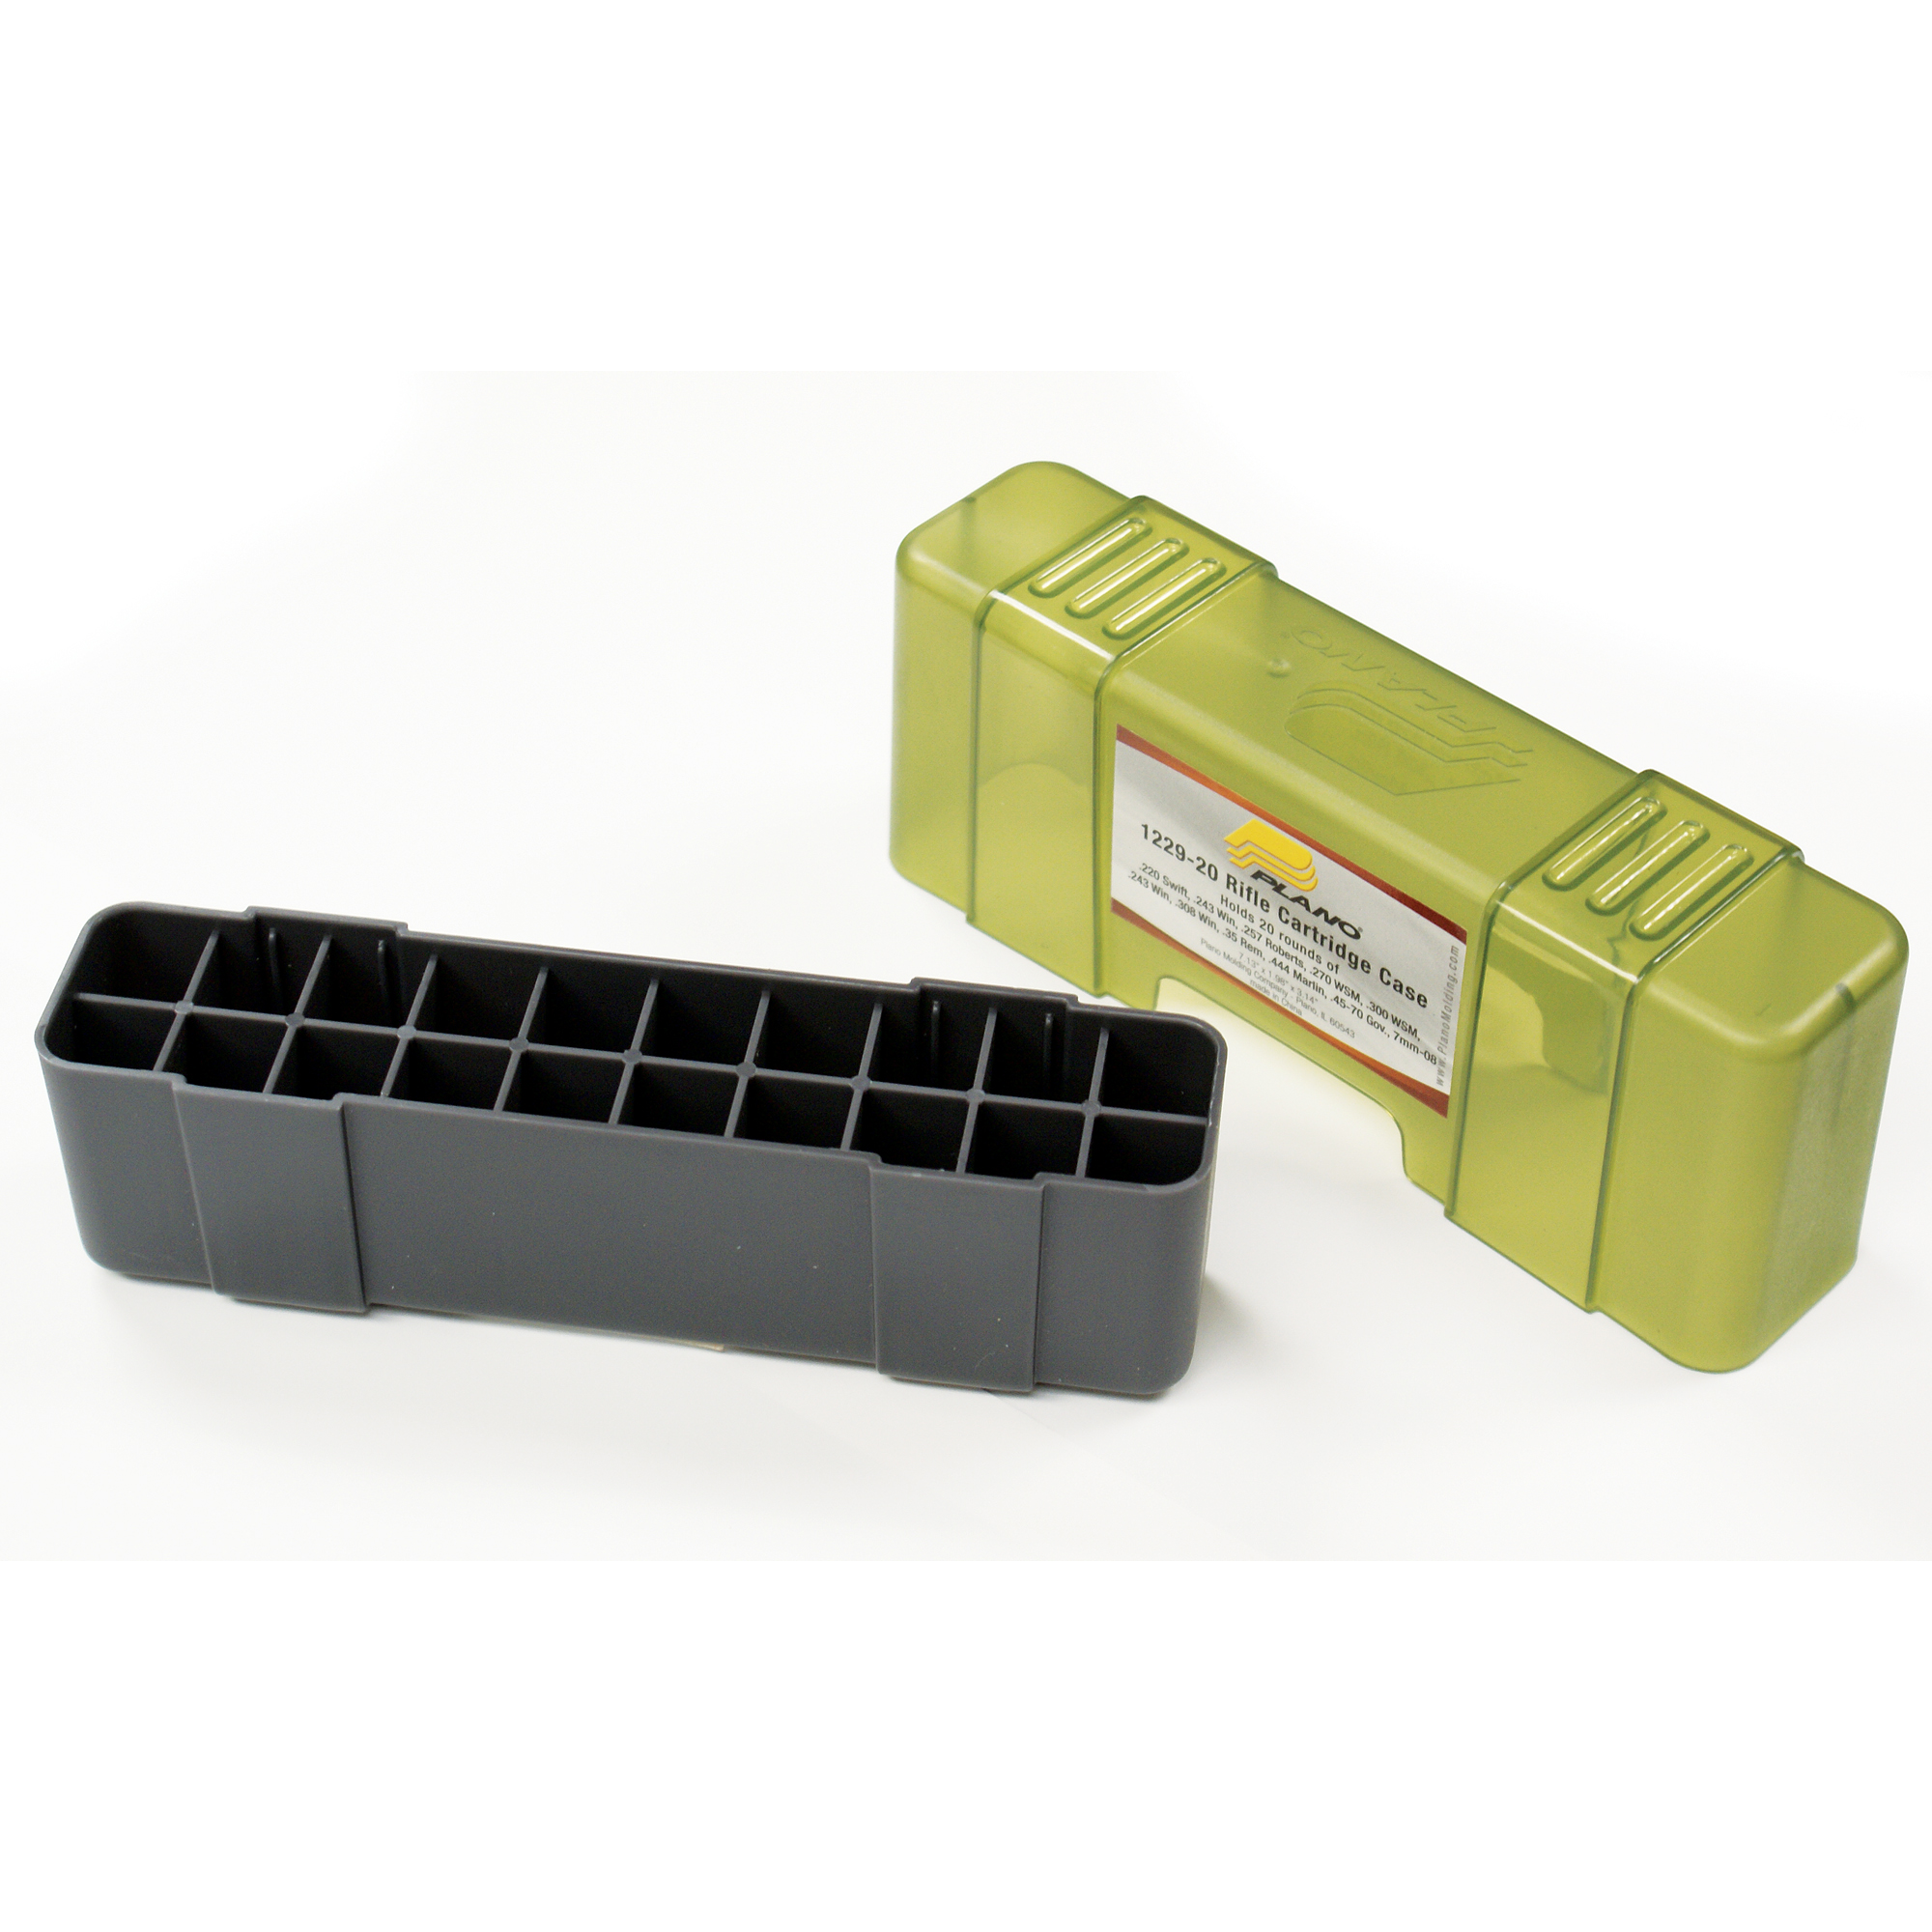 """Securely store up to 20 rounds of rifle ammunition with this hard plastic case. This durable storage box features dependable closure and deep individual slots to keep ammo organized"""" protected and accessible."""